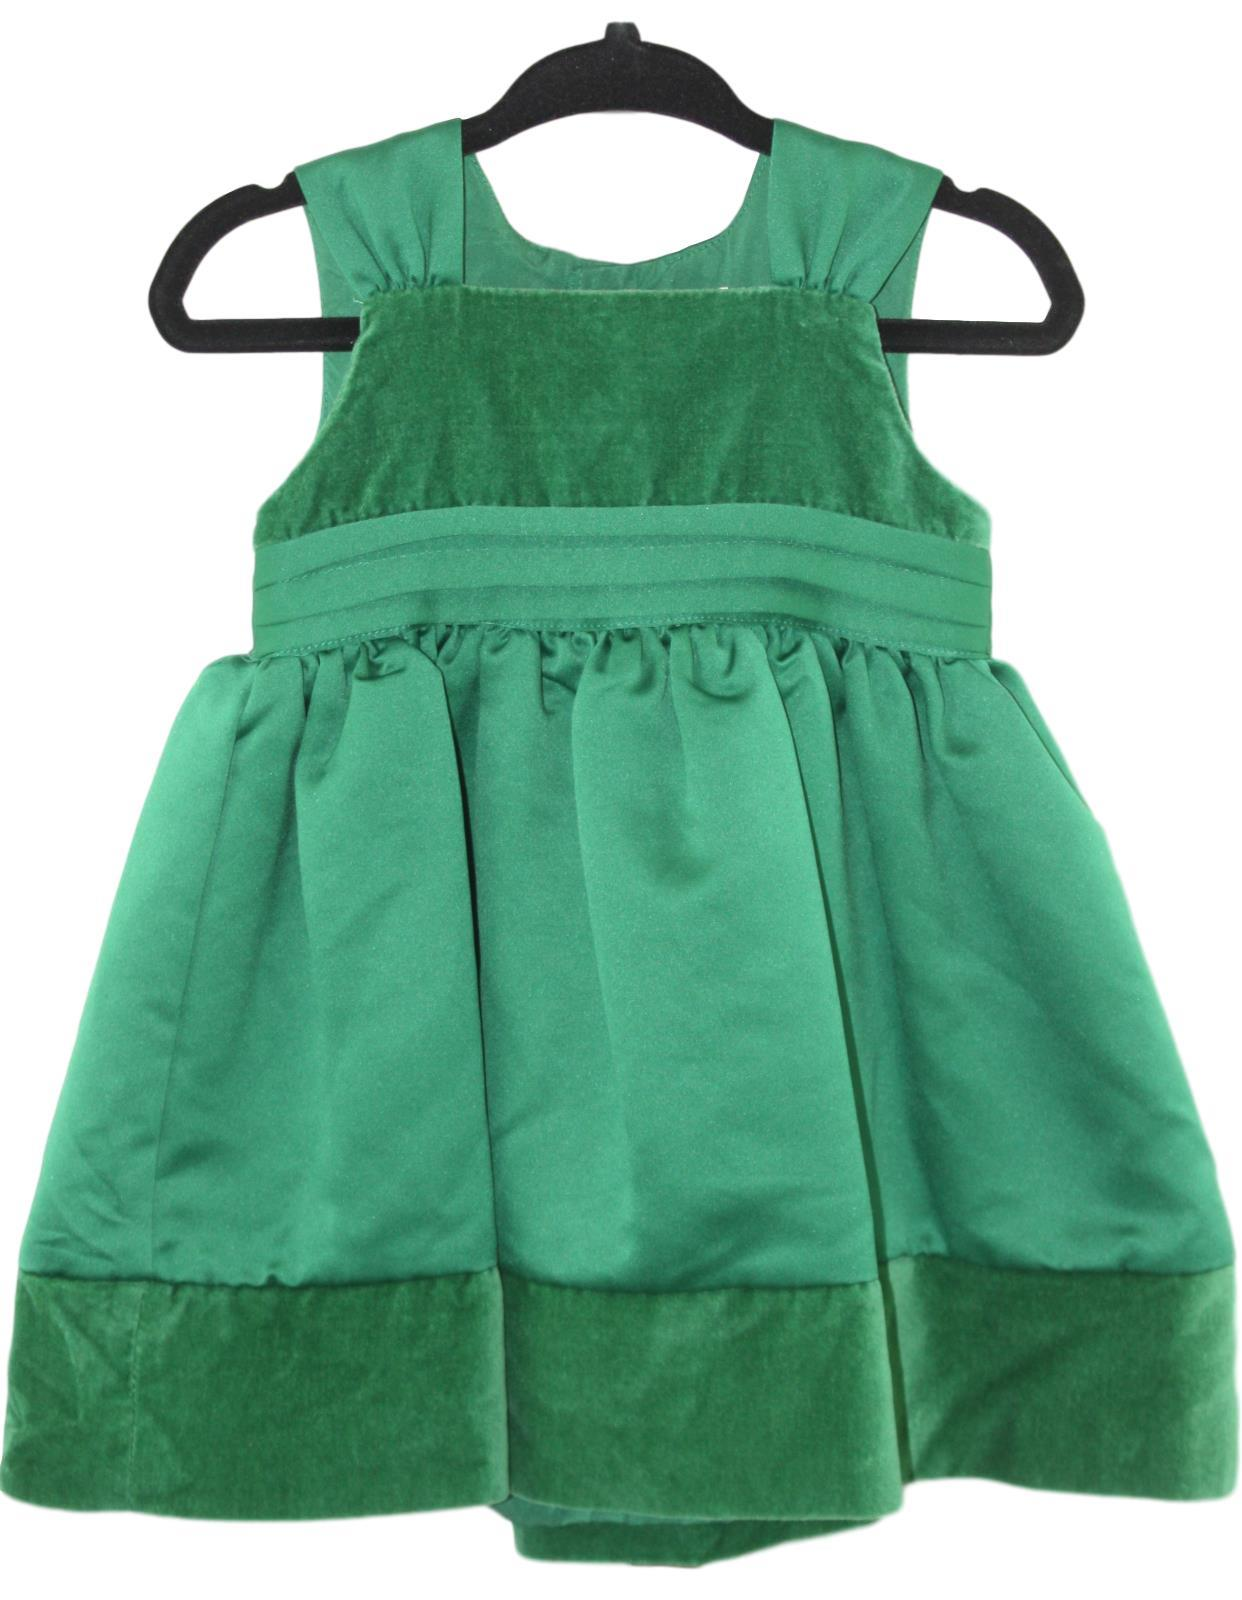 Christmas Green Dress.Details About Carters Baby Girl Green Christmas Holiday Sleeveless Dress Jumper Size 9 Mo